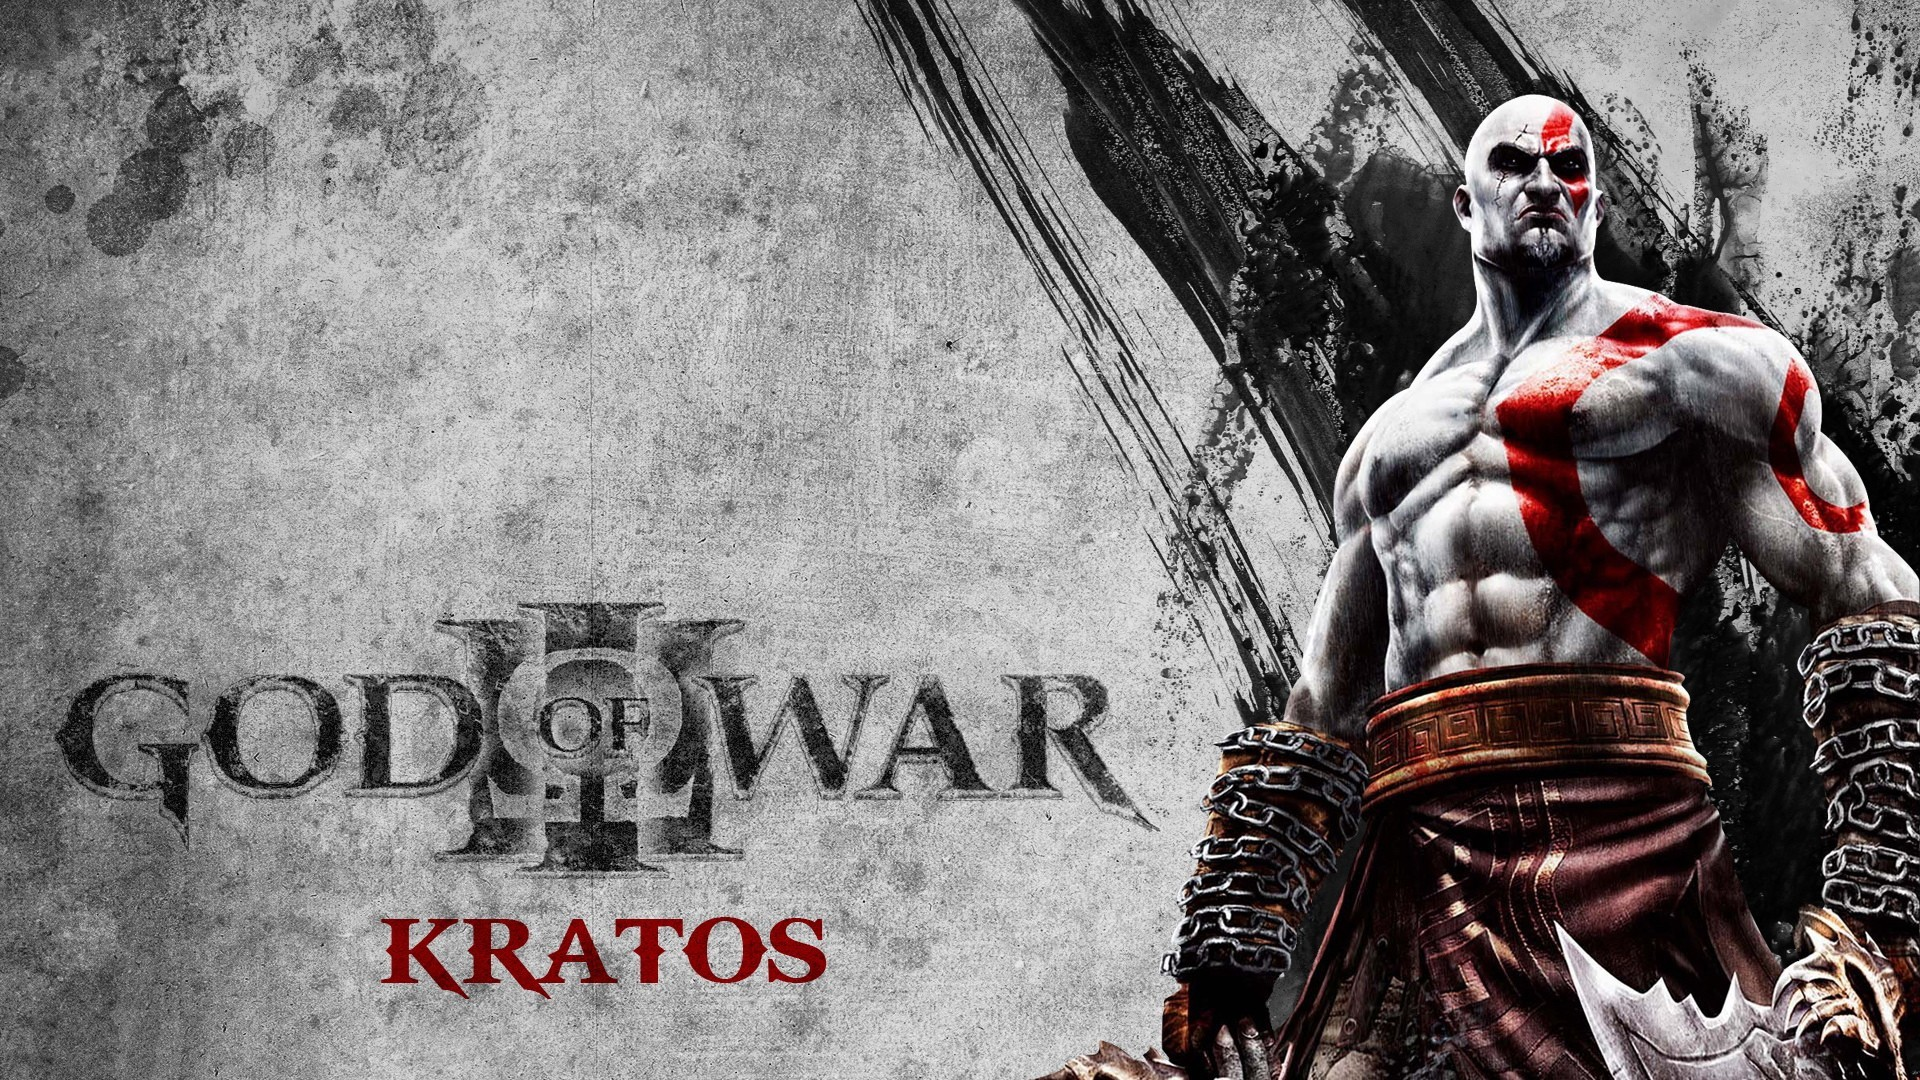 Hd God Of War 3 Wallpapers Hd Desktop Wallpapers Amazing